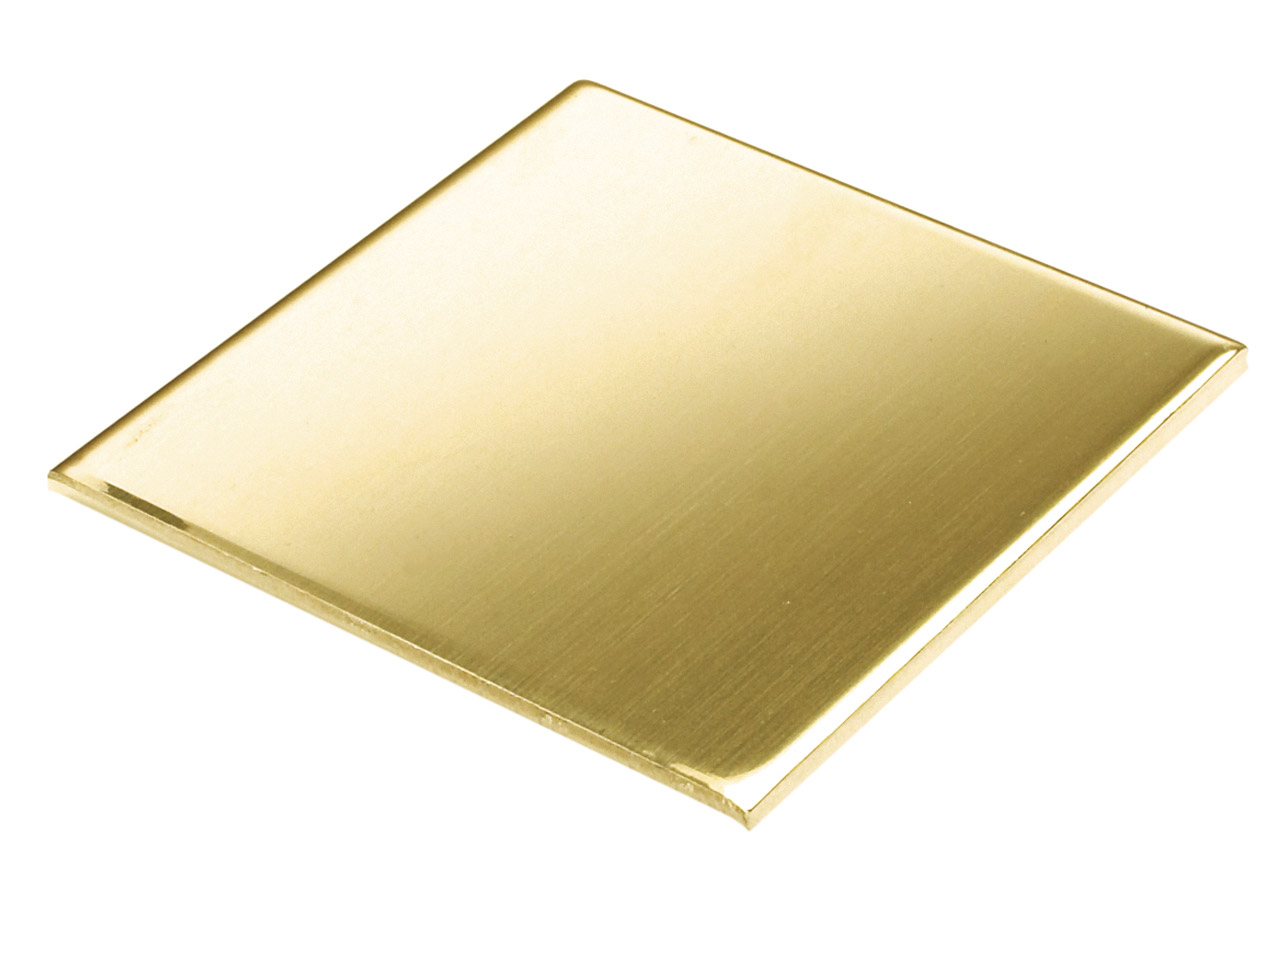 Brass Sheet 75x75x0.9mm